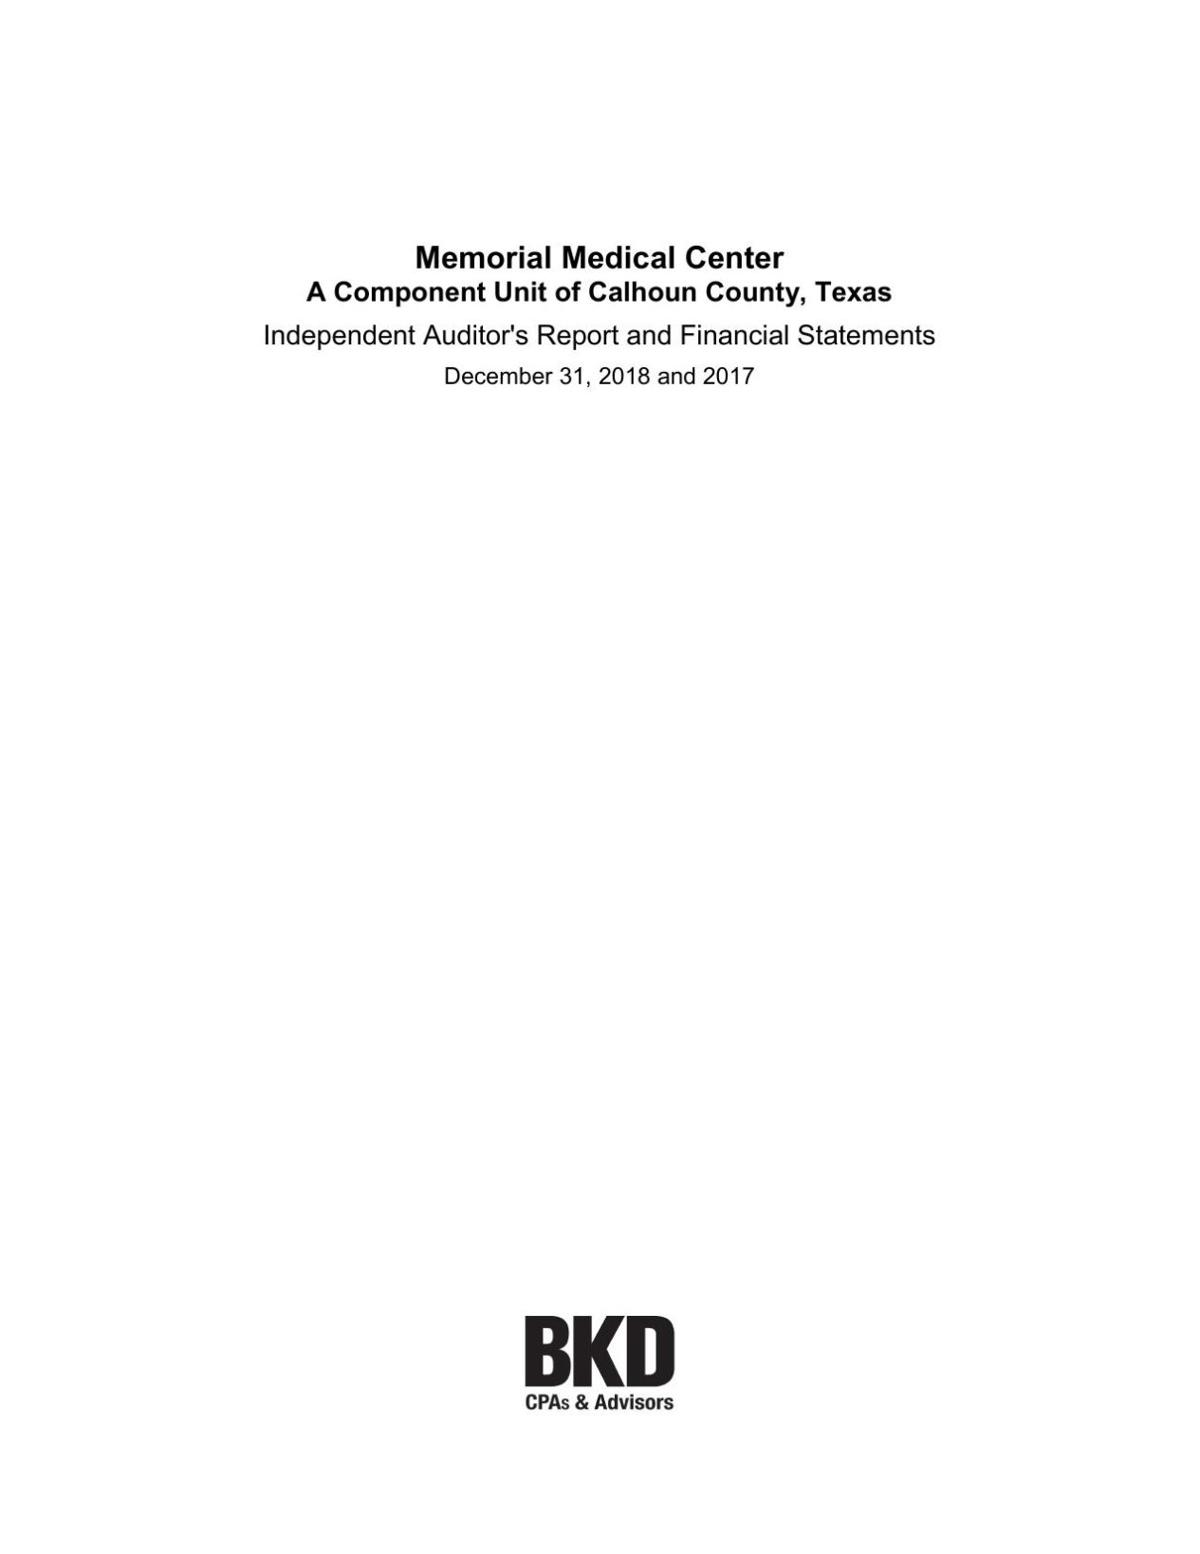 Memorial Medical Center 2018 audit